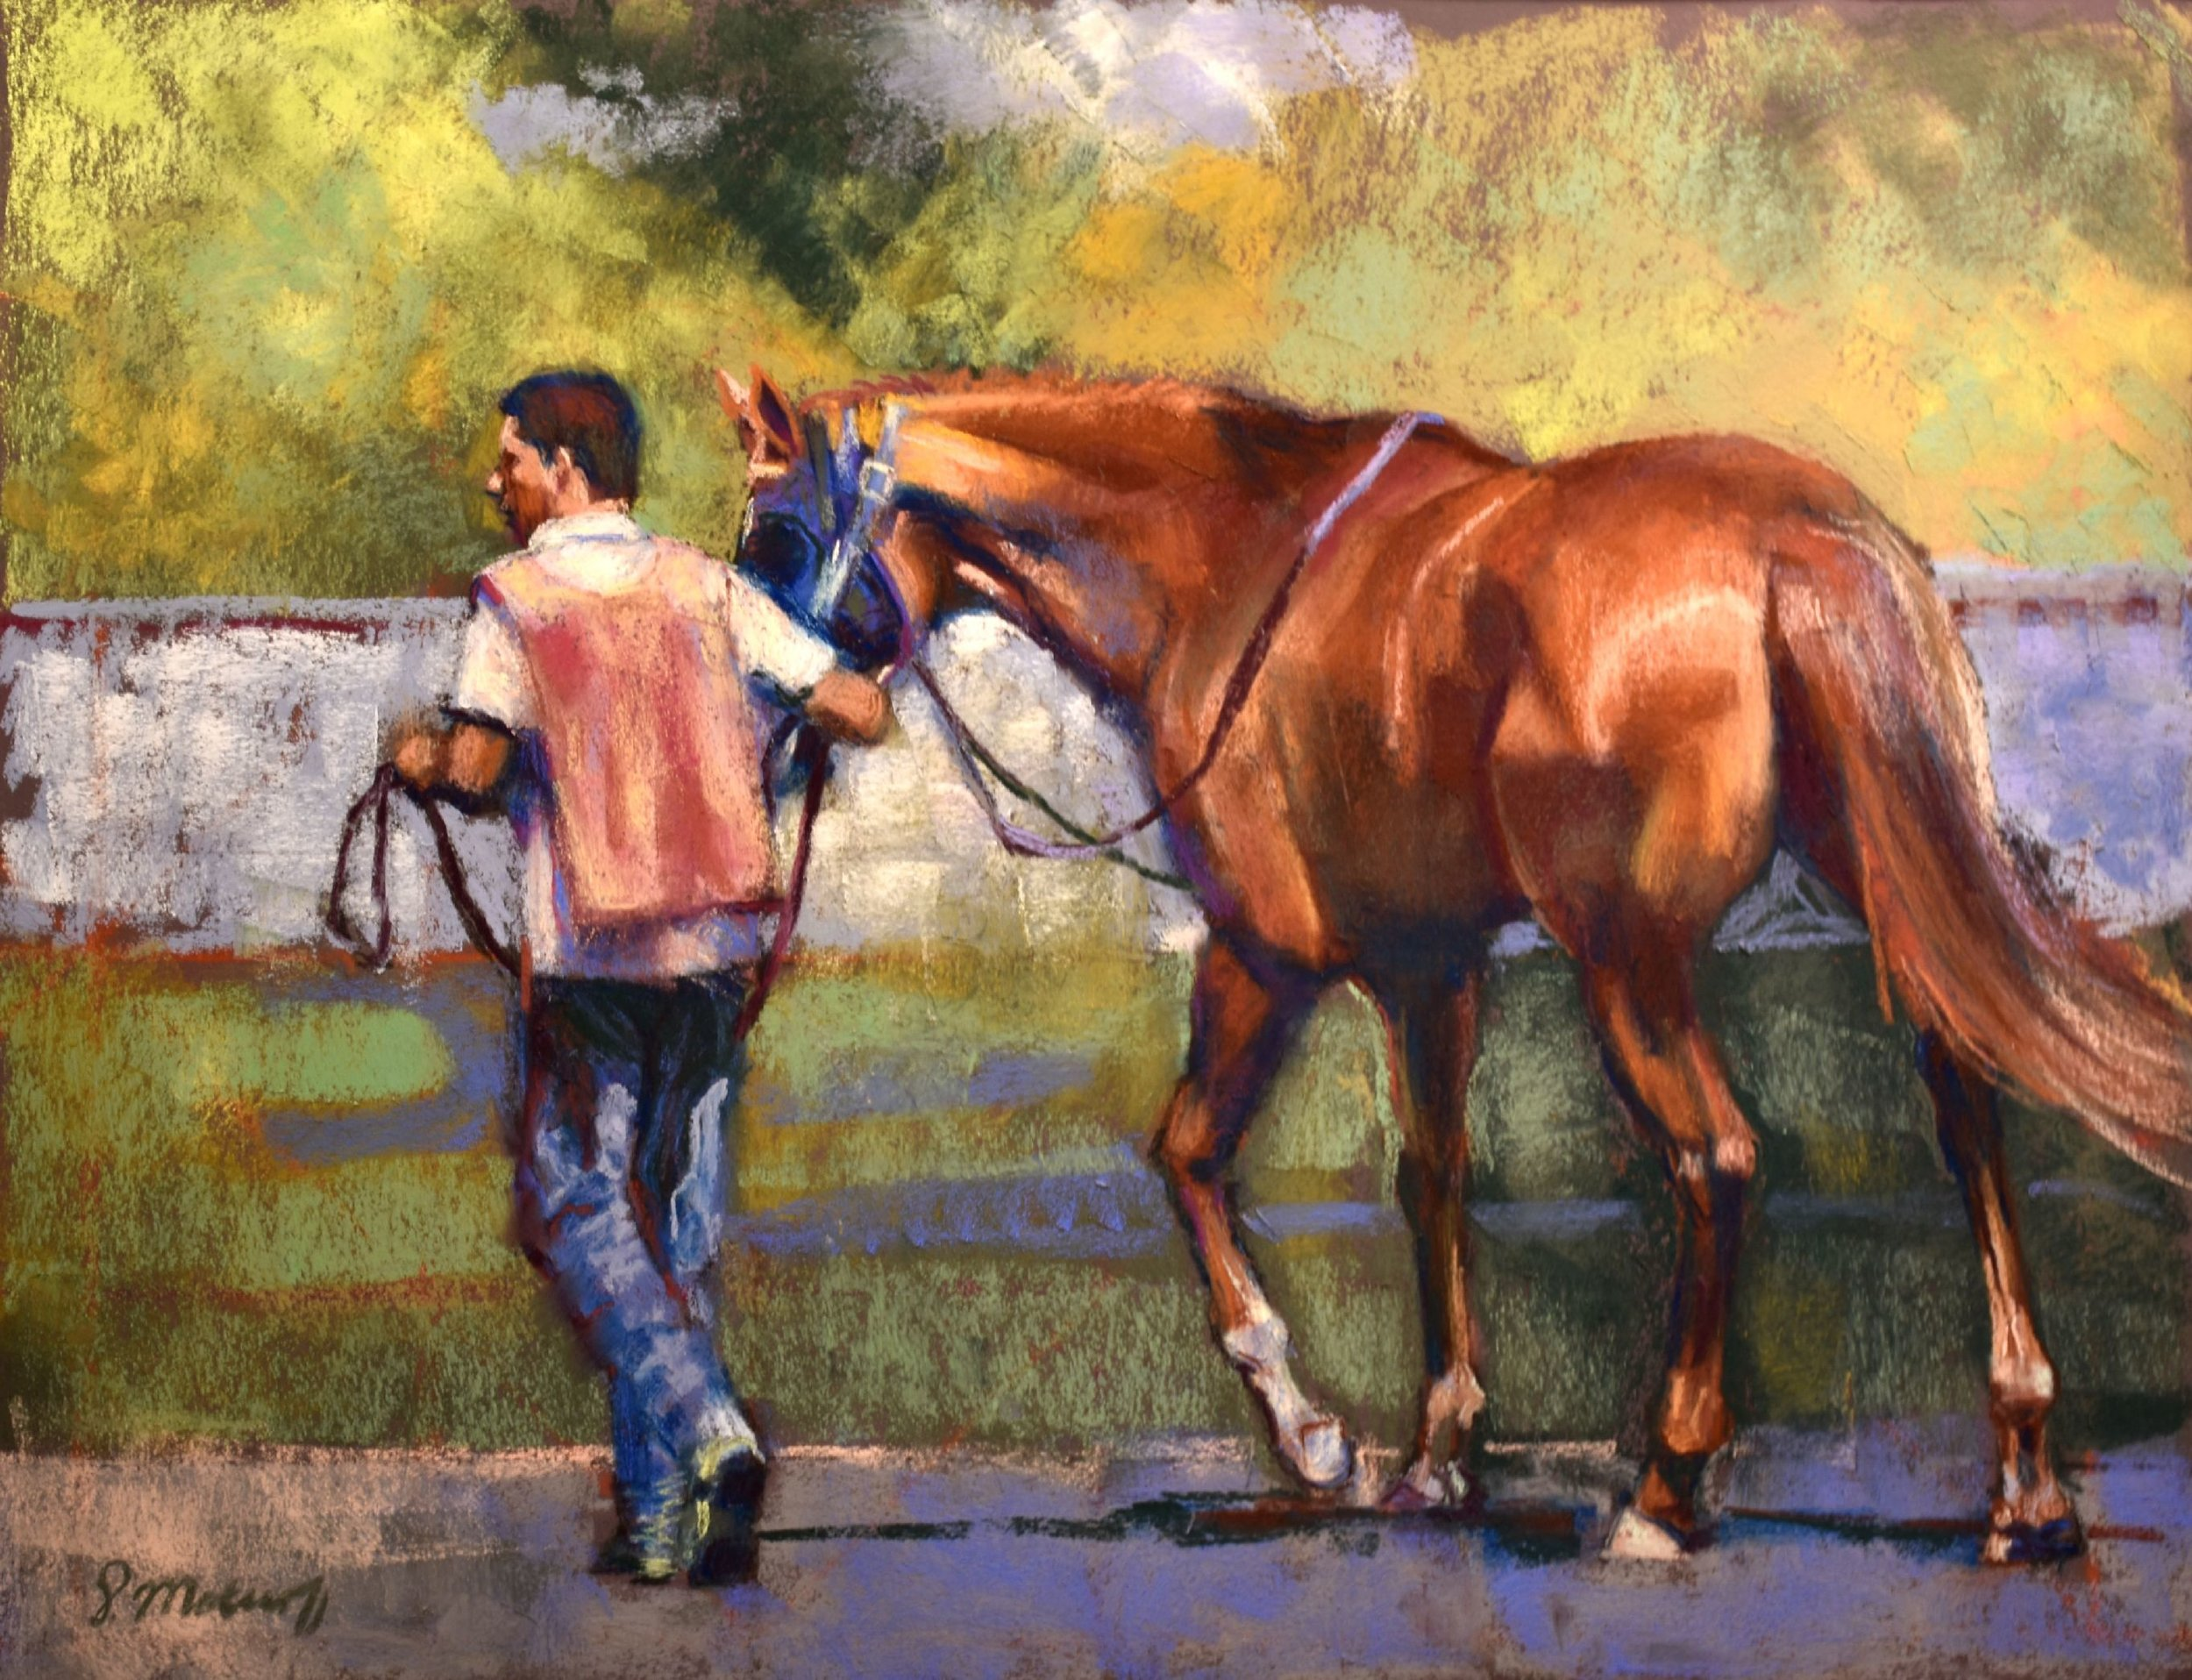 """Before the Race"" by Sharon Matisoff, 19x36in, pastel on sanded paper (2017)"